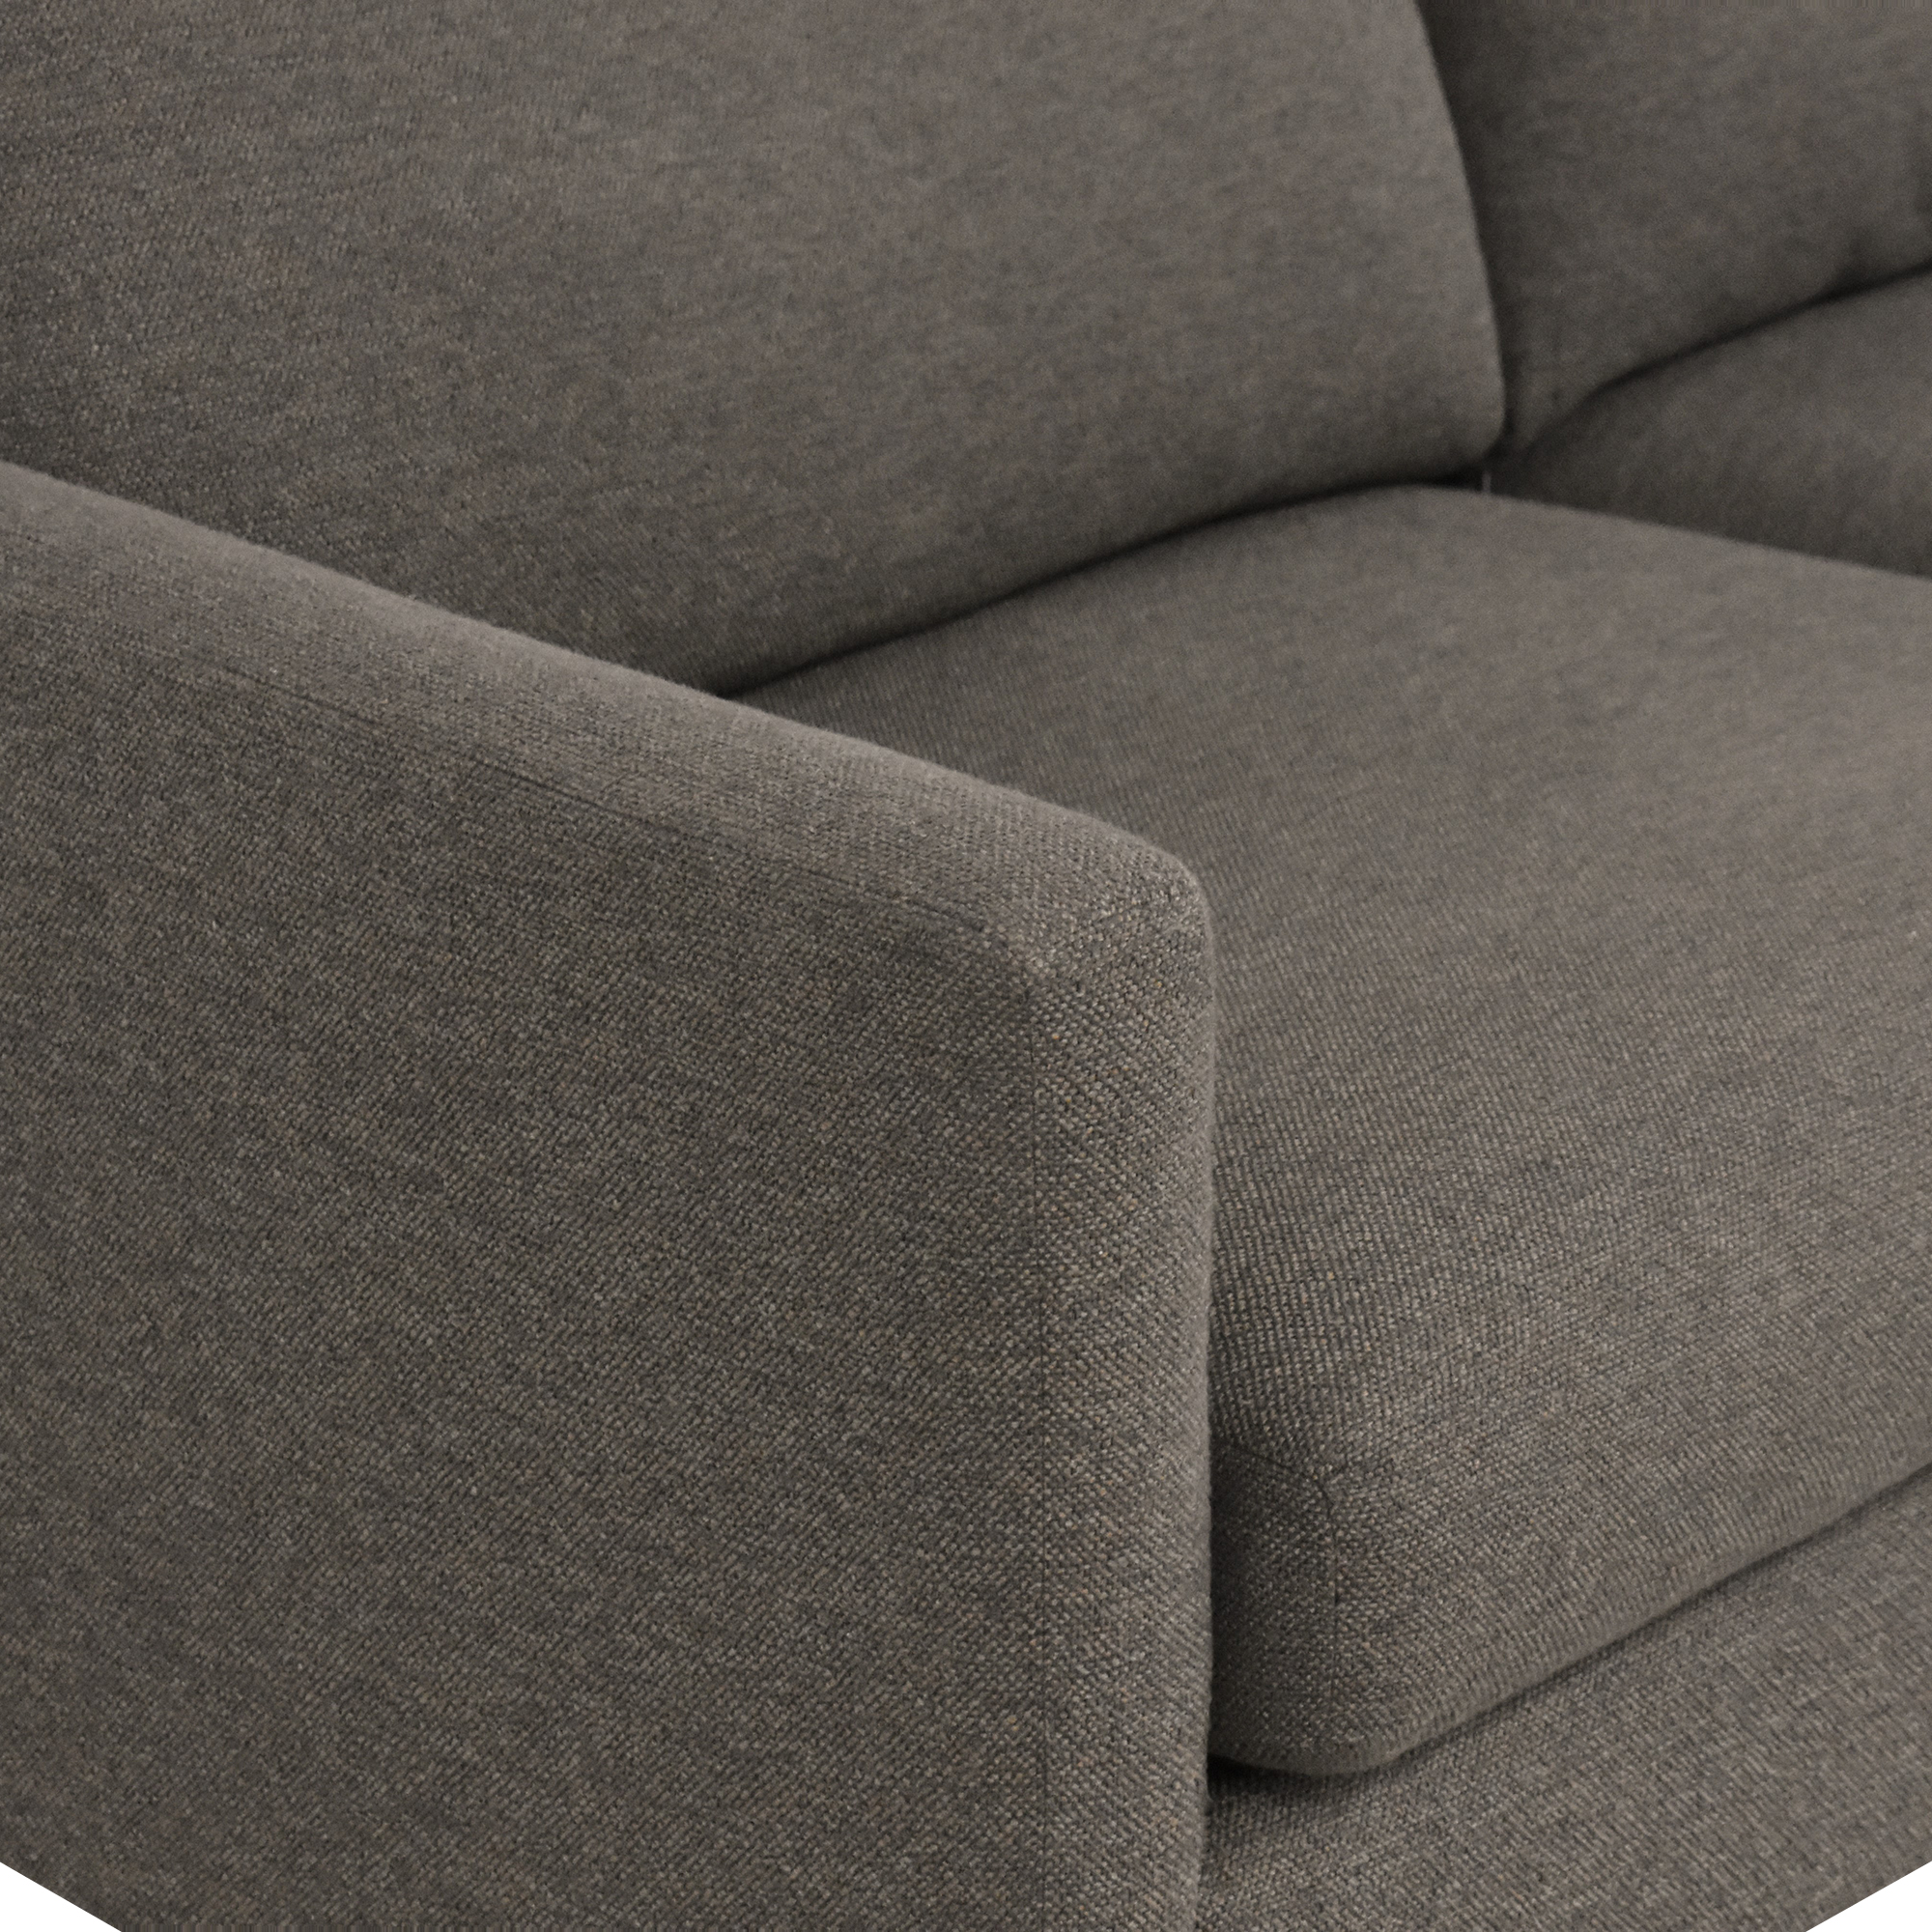 buy Younger Furniture Lenny Apartment Sofa Younger Furniture